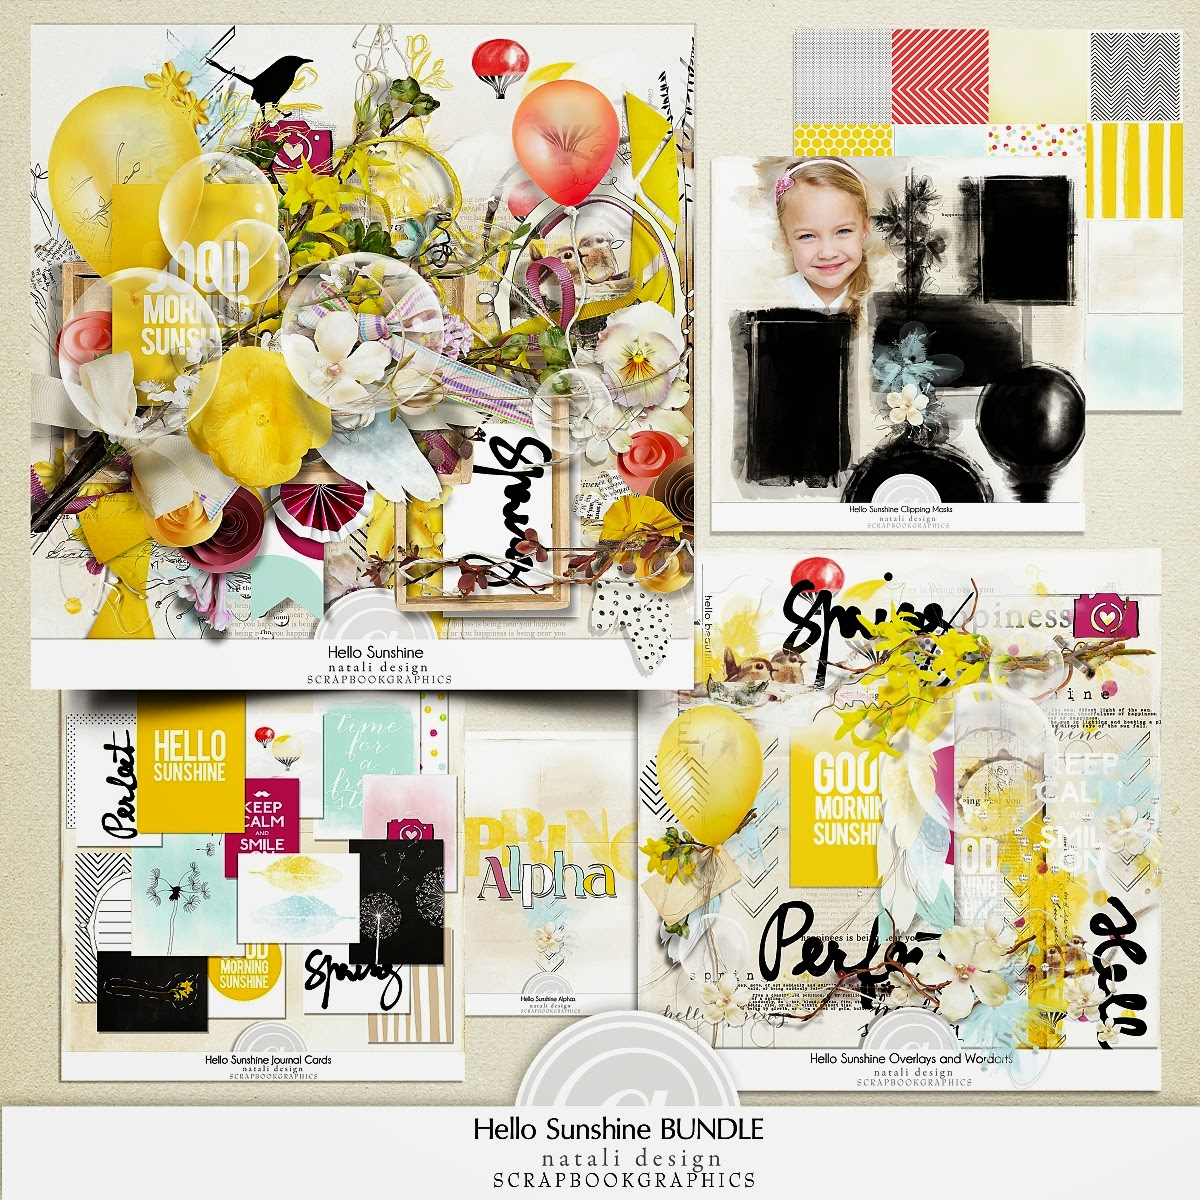 http://shop.scrapbookgraphics.com/Hello-Sunshine-Bundle.html